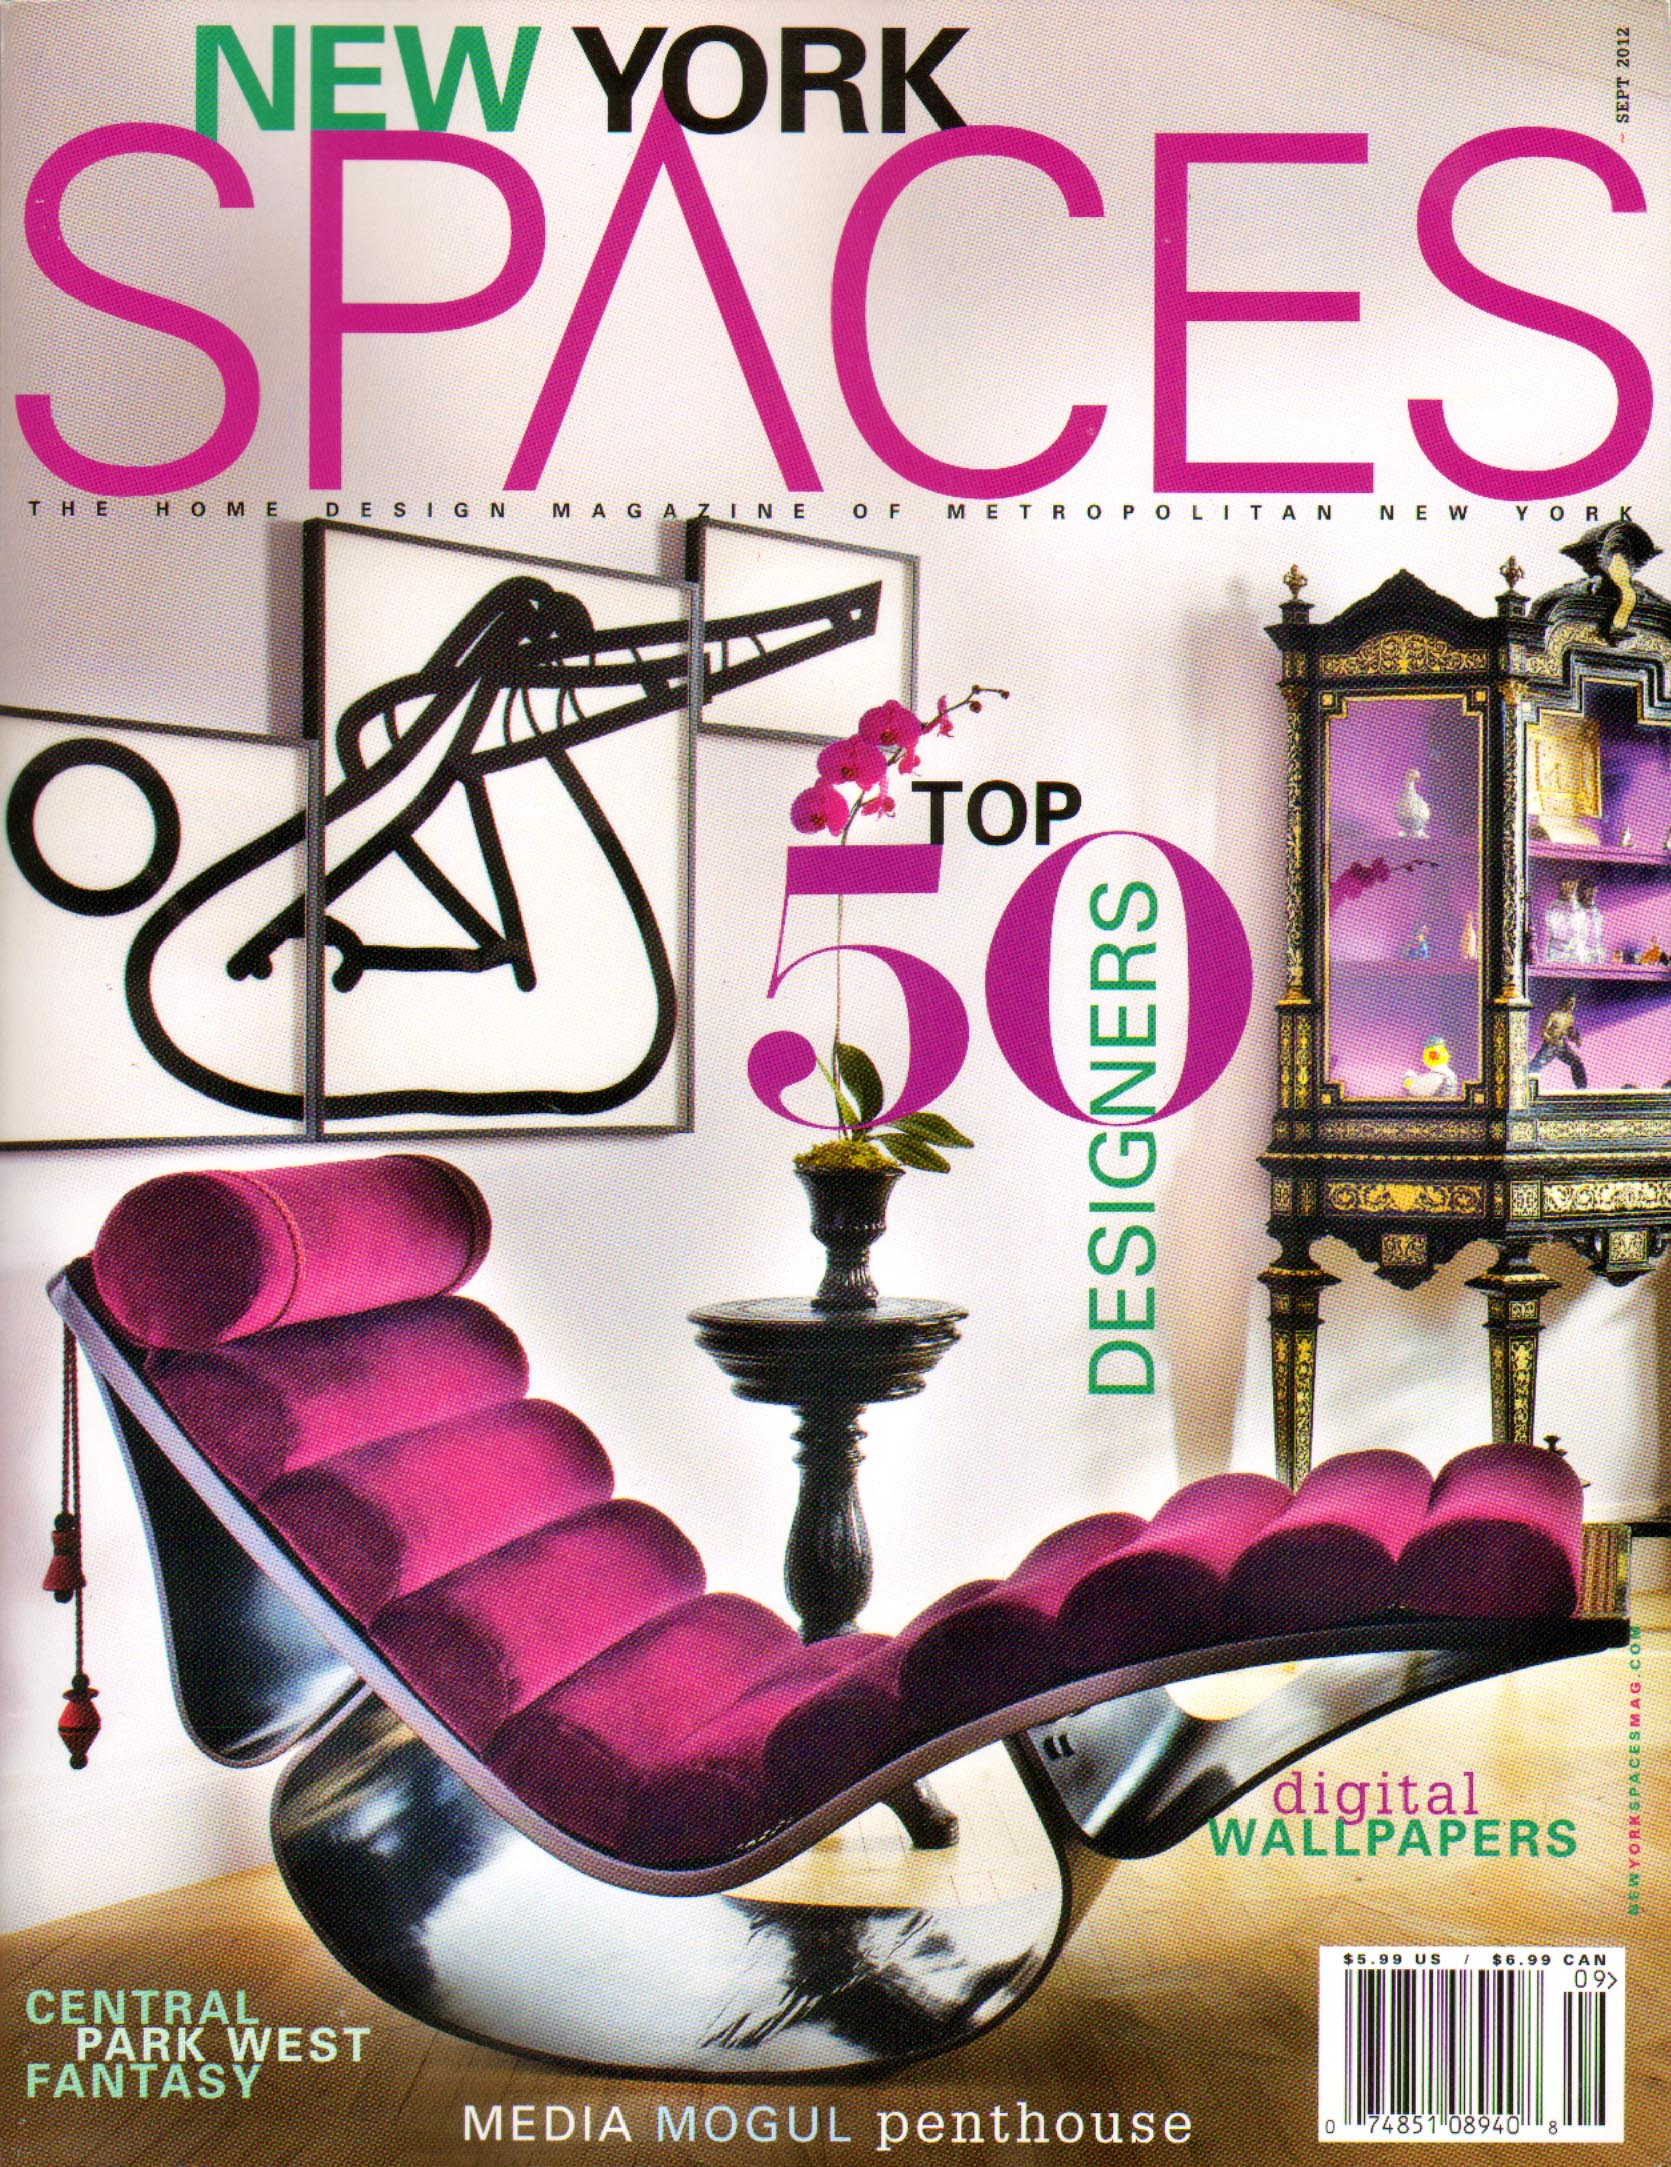 22 NY+Spaces+9-12+cover.jpg